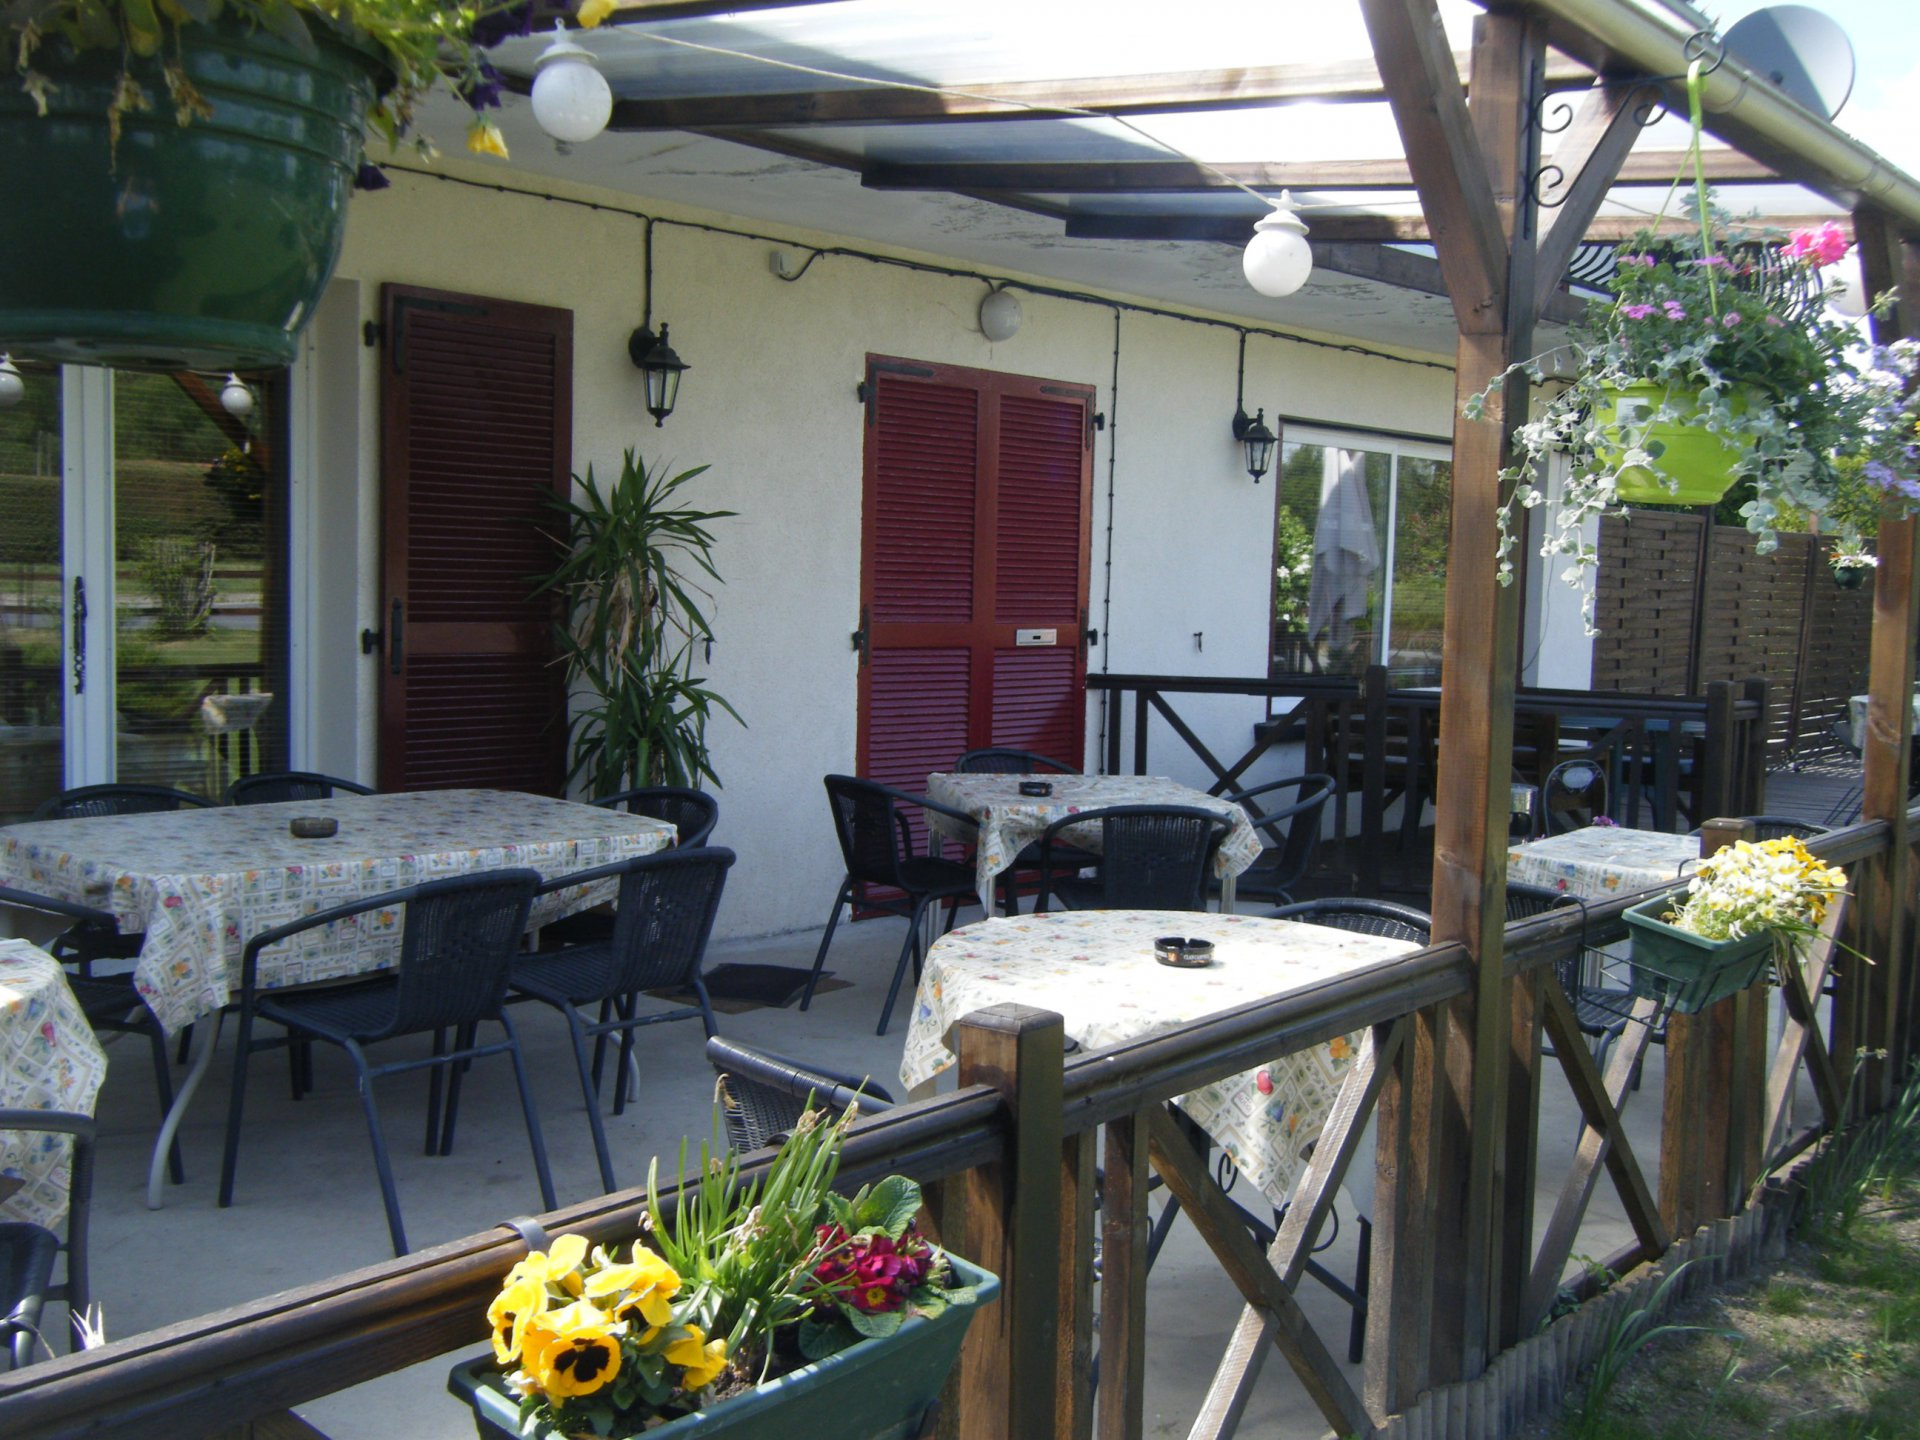 Bar/restaurant with licence IV and apartment in Auvergne